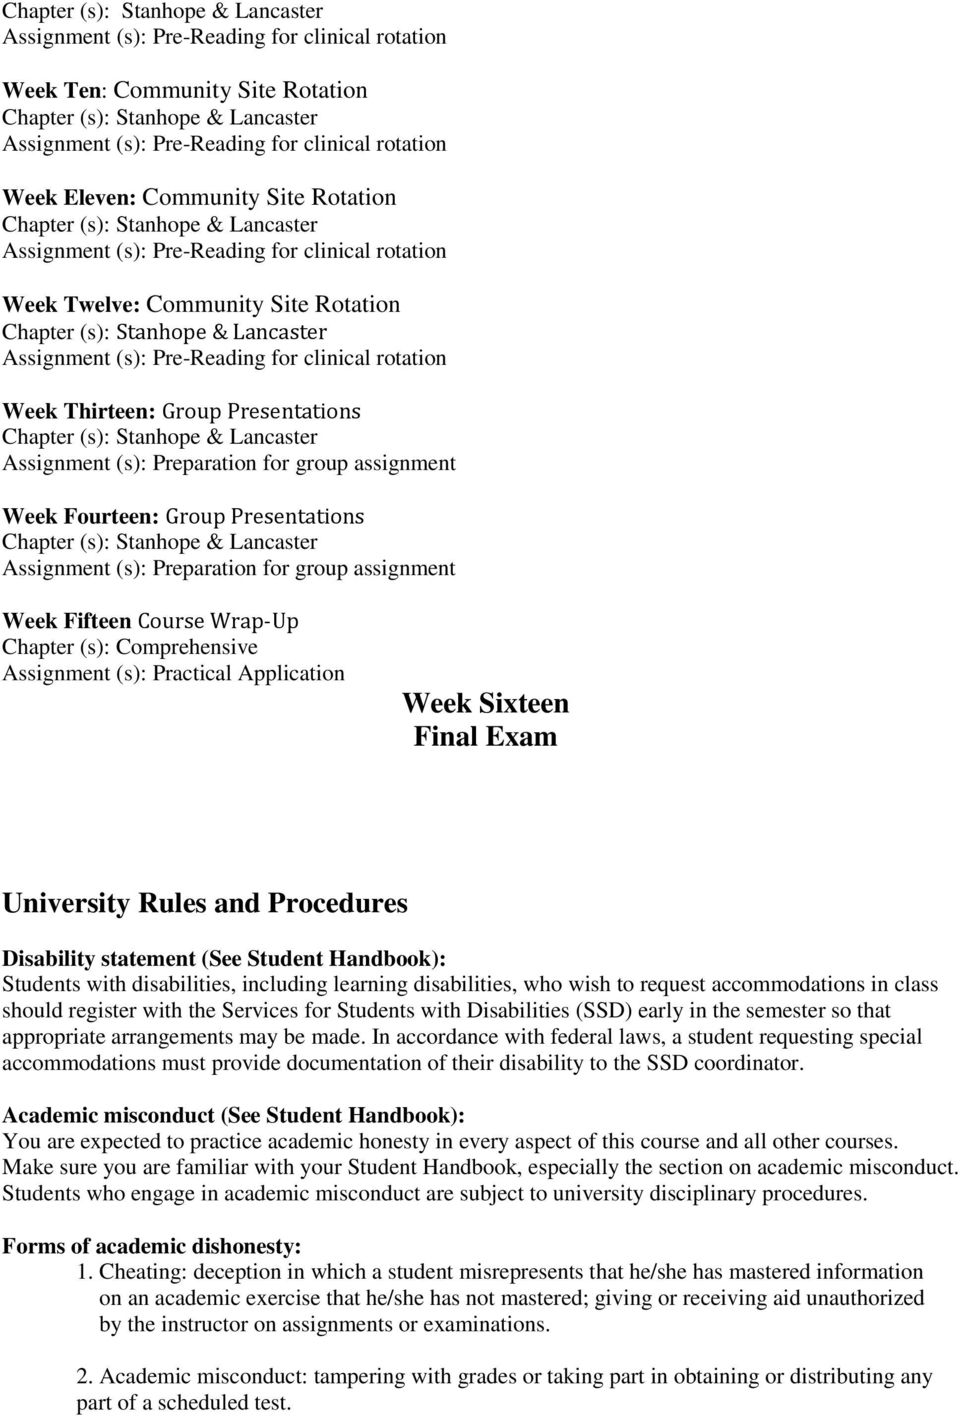 University Rules and Procedures Disability statement (See Student Handbook): Students with disabilities, including learning disabilities, who wish to request accommodations in class should register